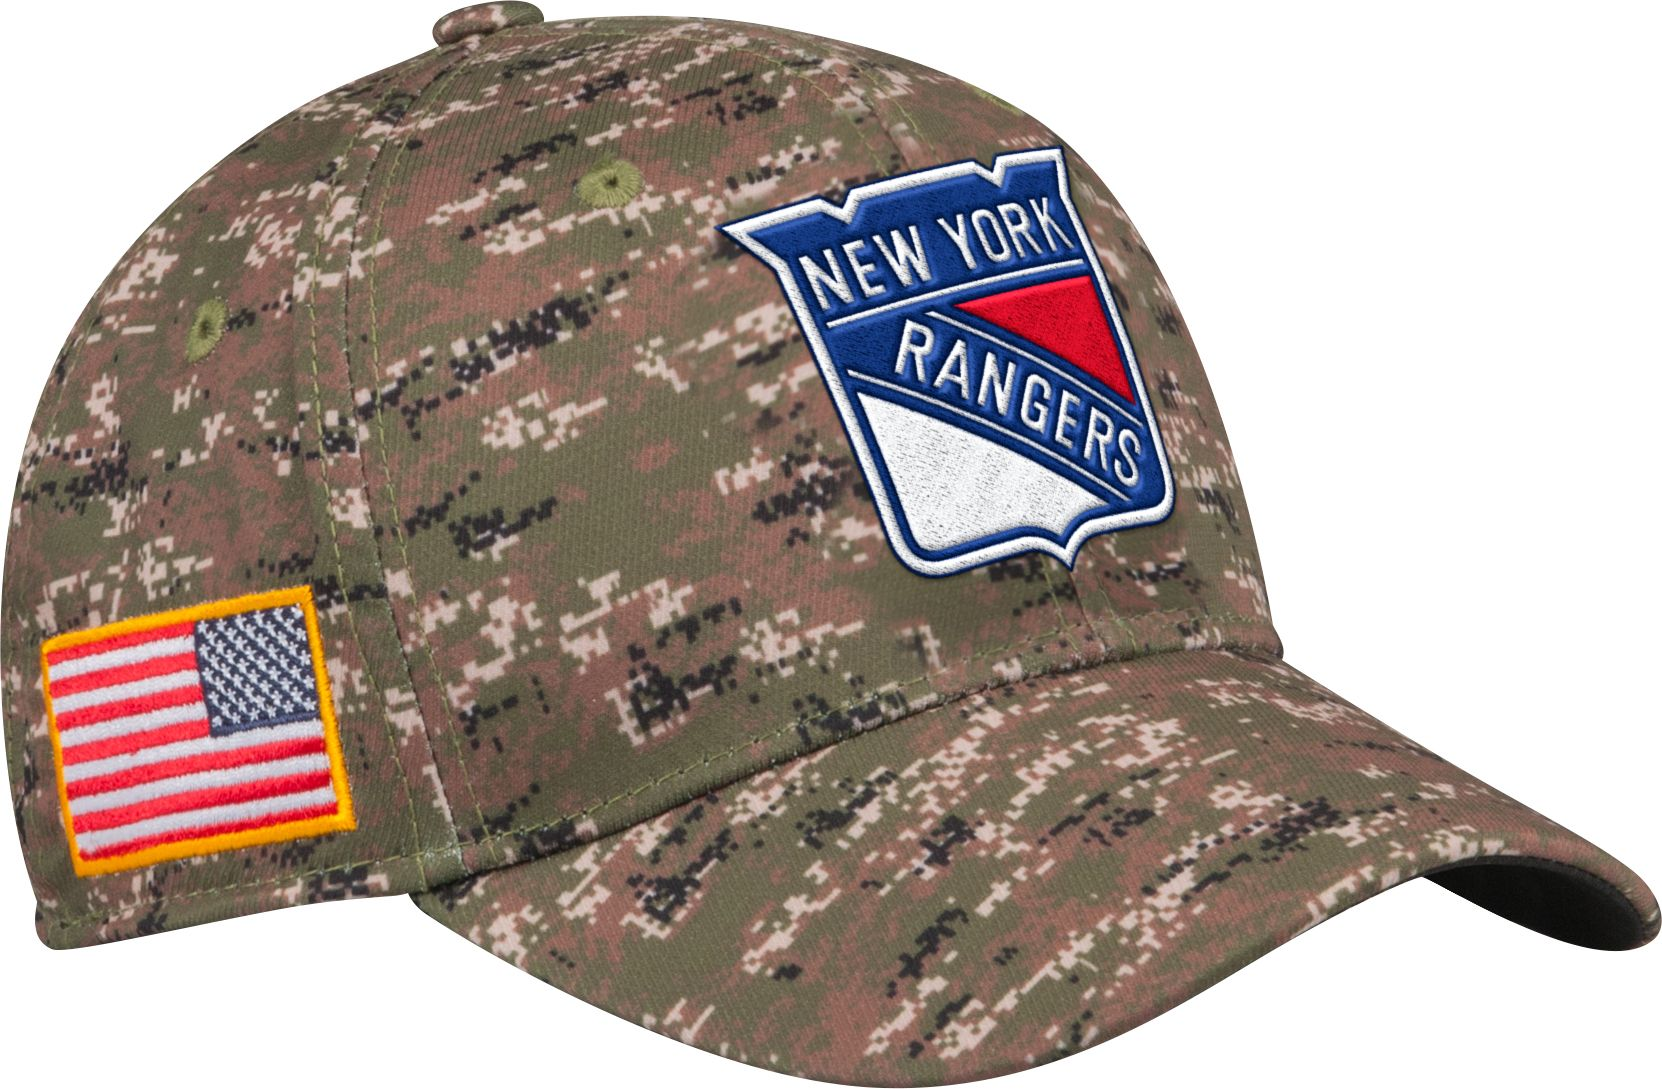 adidas Men's New York Rangers Camo Structured Fitted Flex Hat, Size: L/XL, Team thumbnail